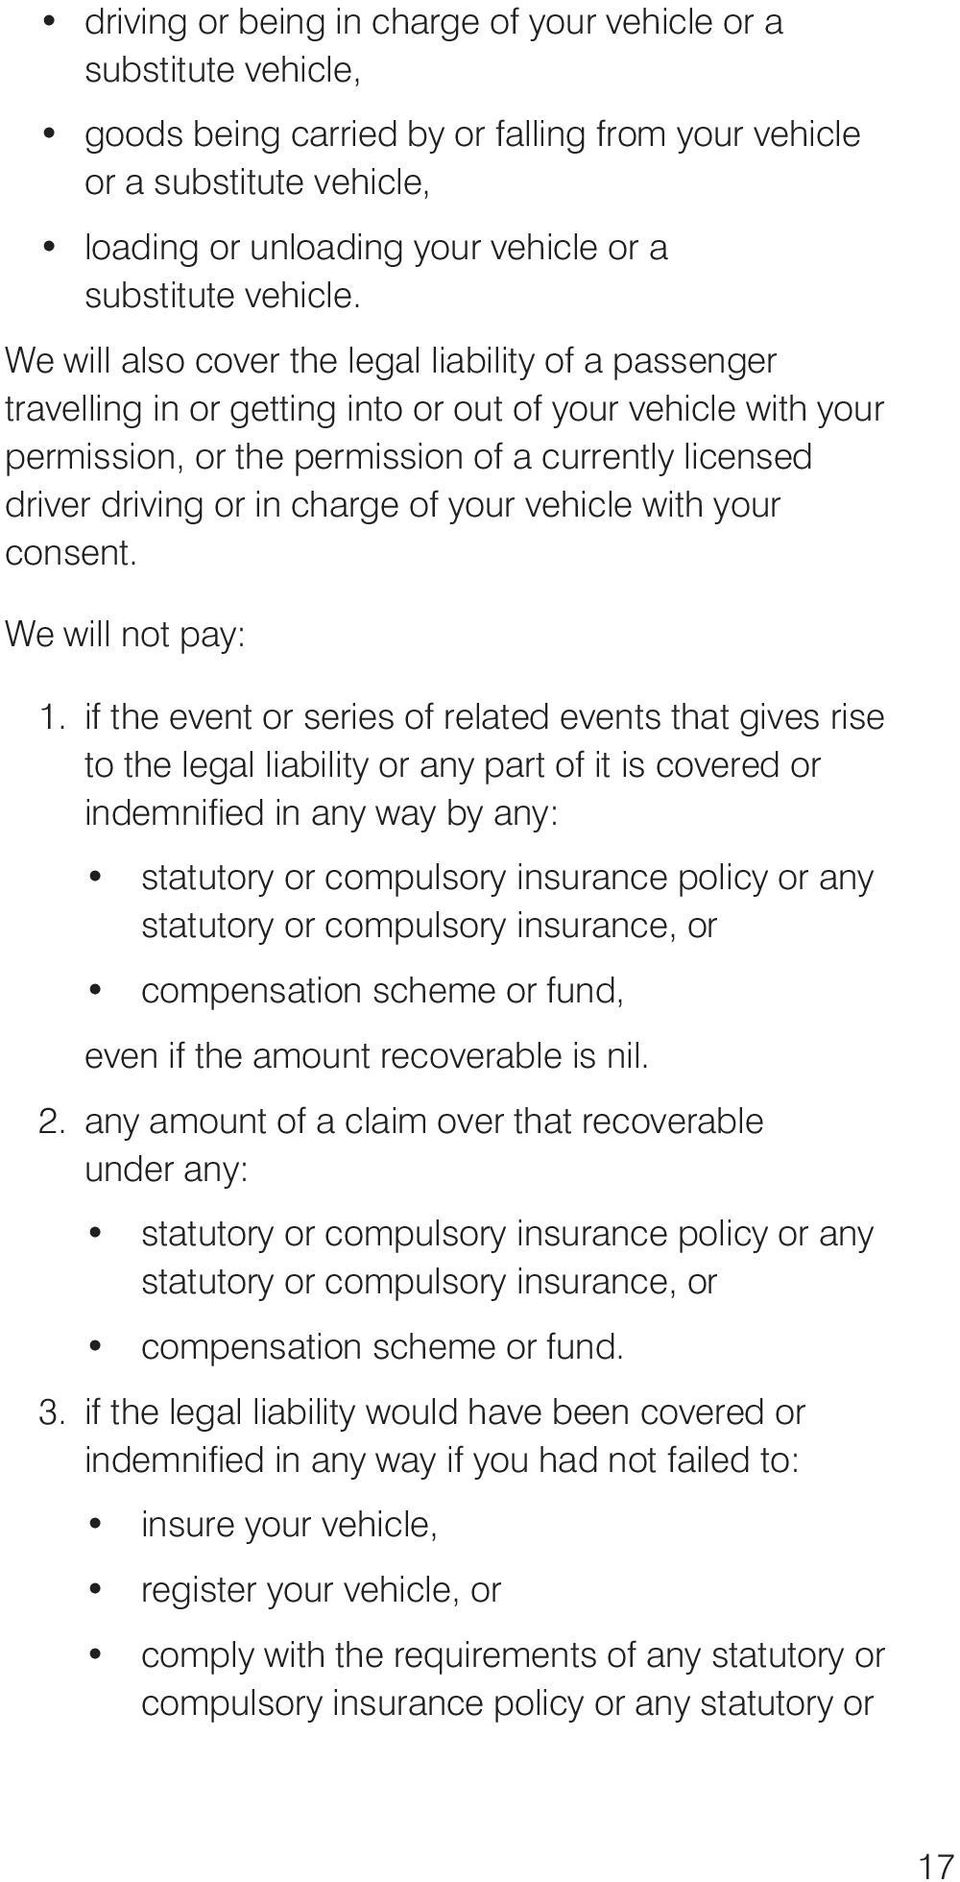 We will also cover the legal liability of a passenger travelling in or getting into or out of your vehicle with your permission, or the permission of a currently licensed driver driving or in charge